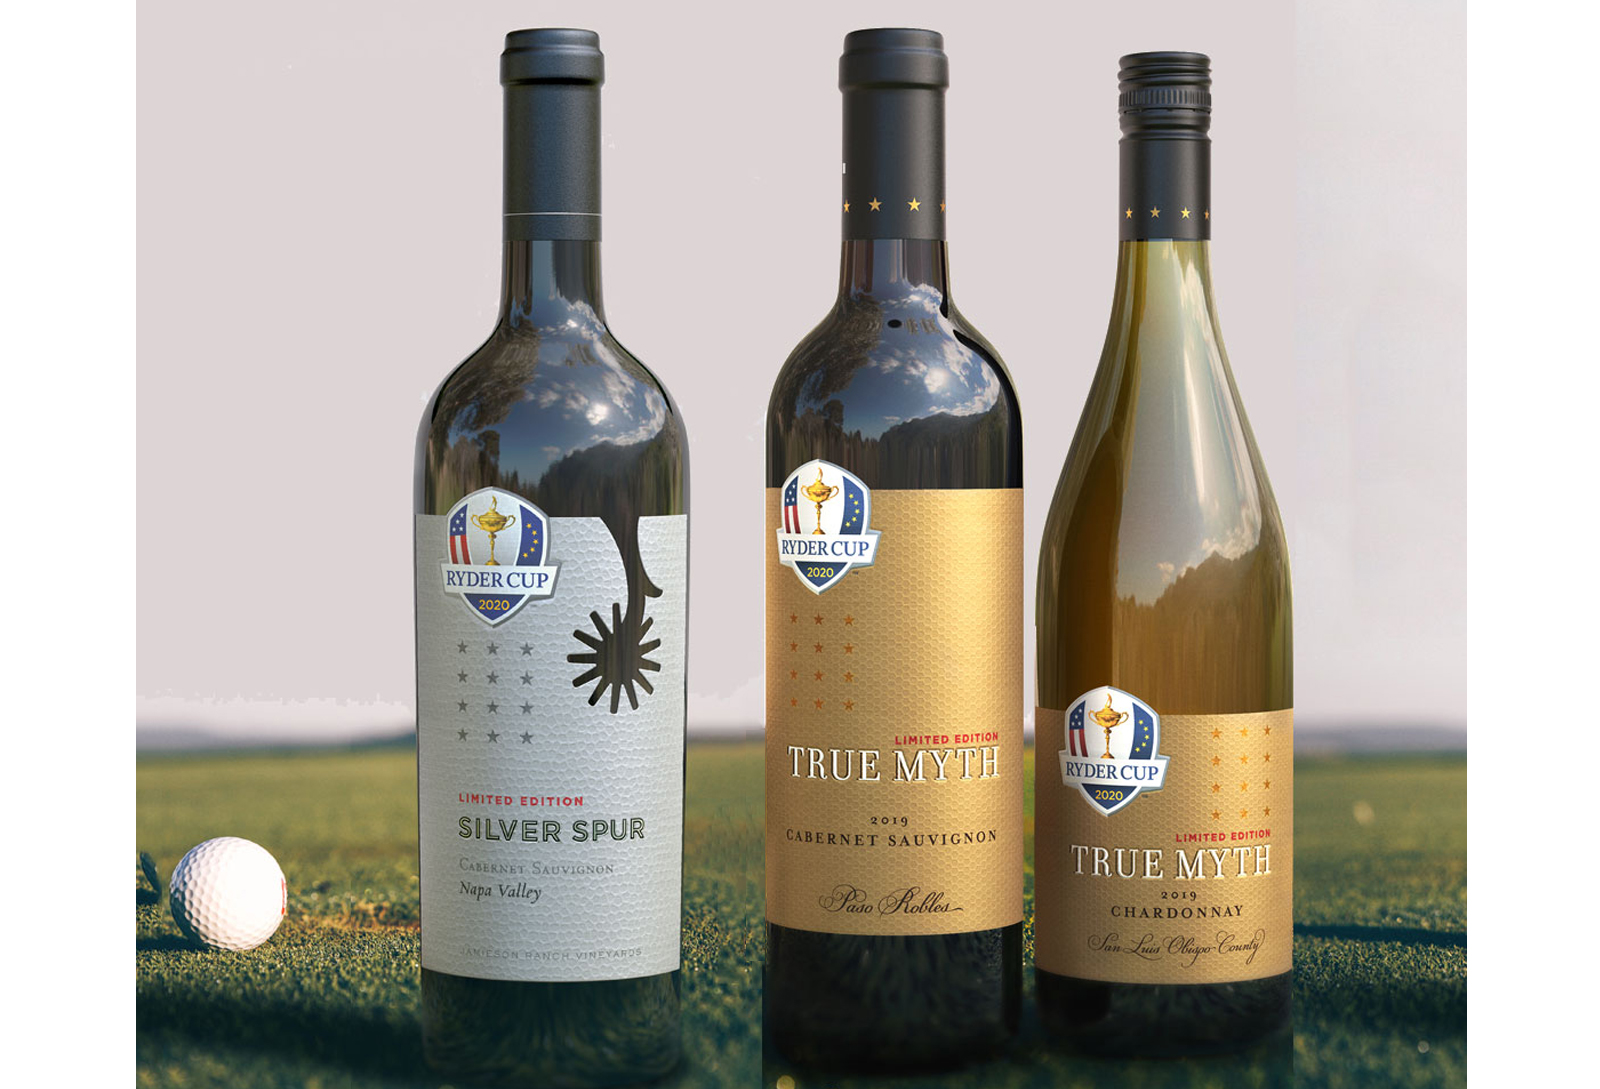 Silver Spur and True Myth Limited Edition Ryder Cup Wines hero 2